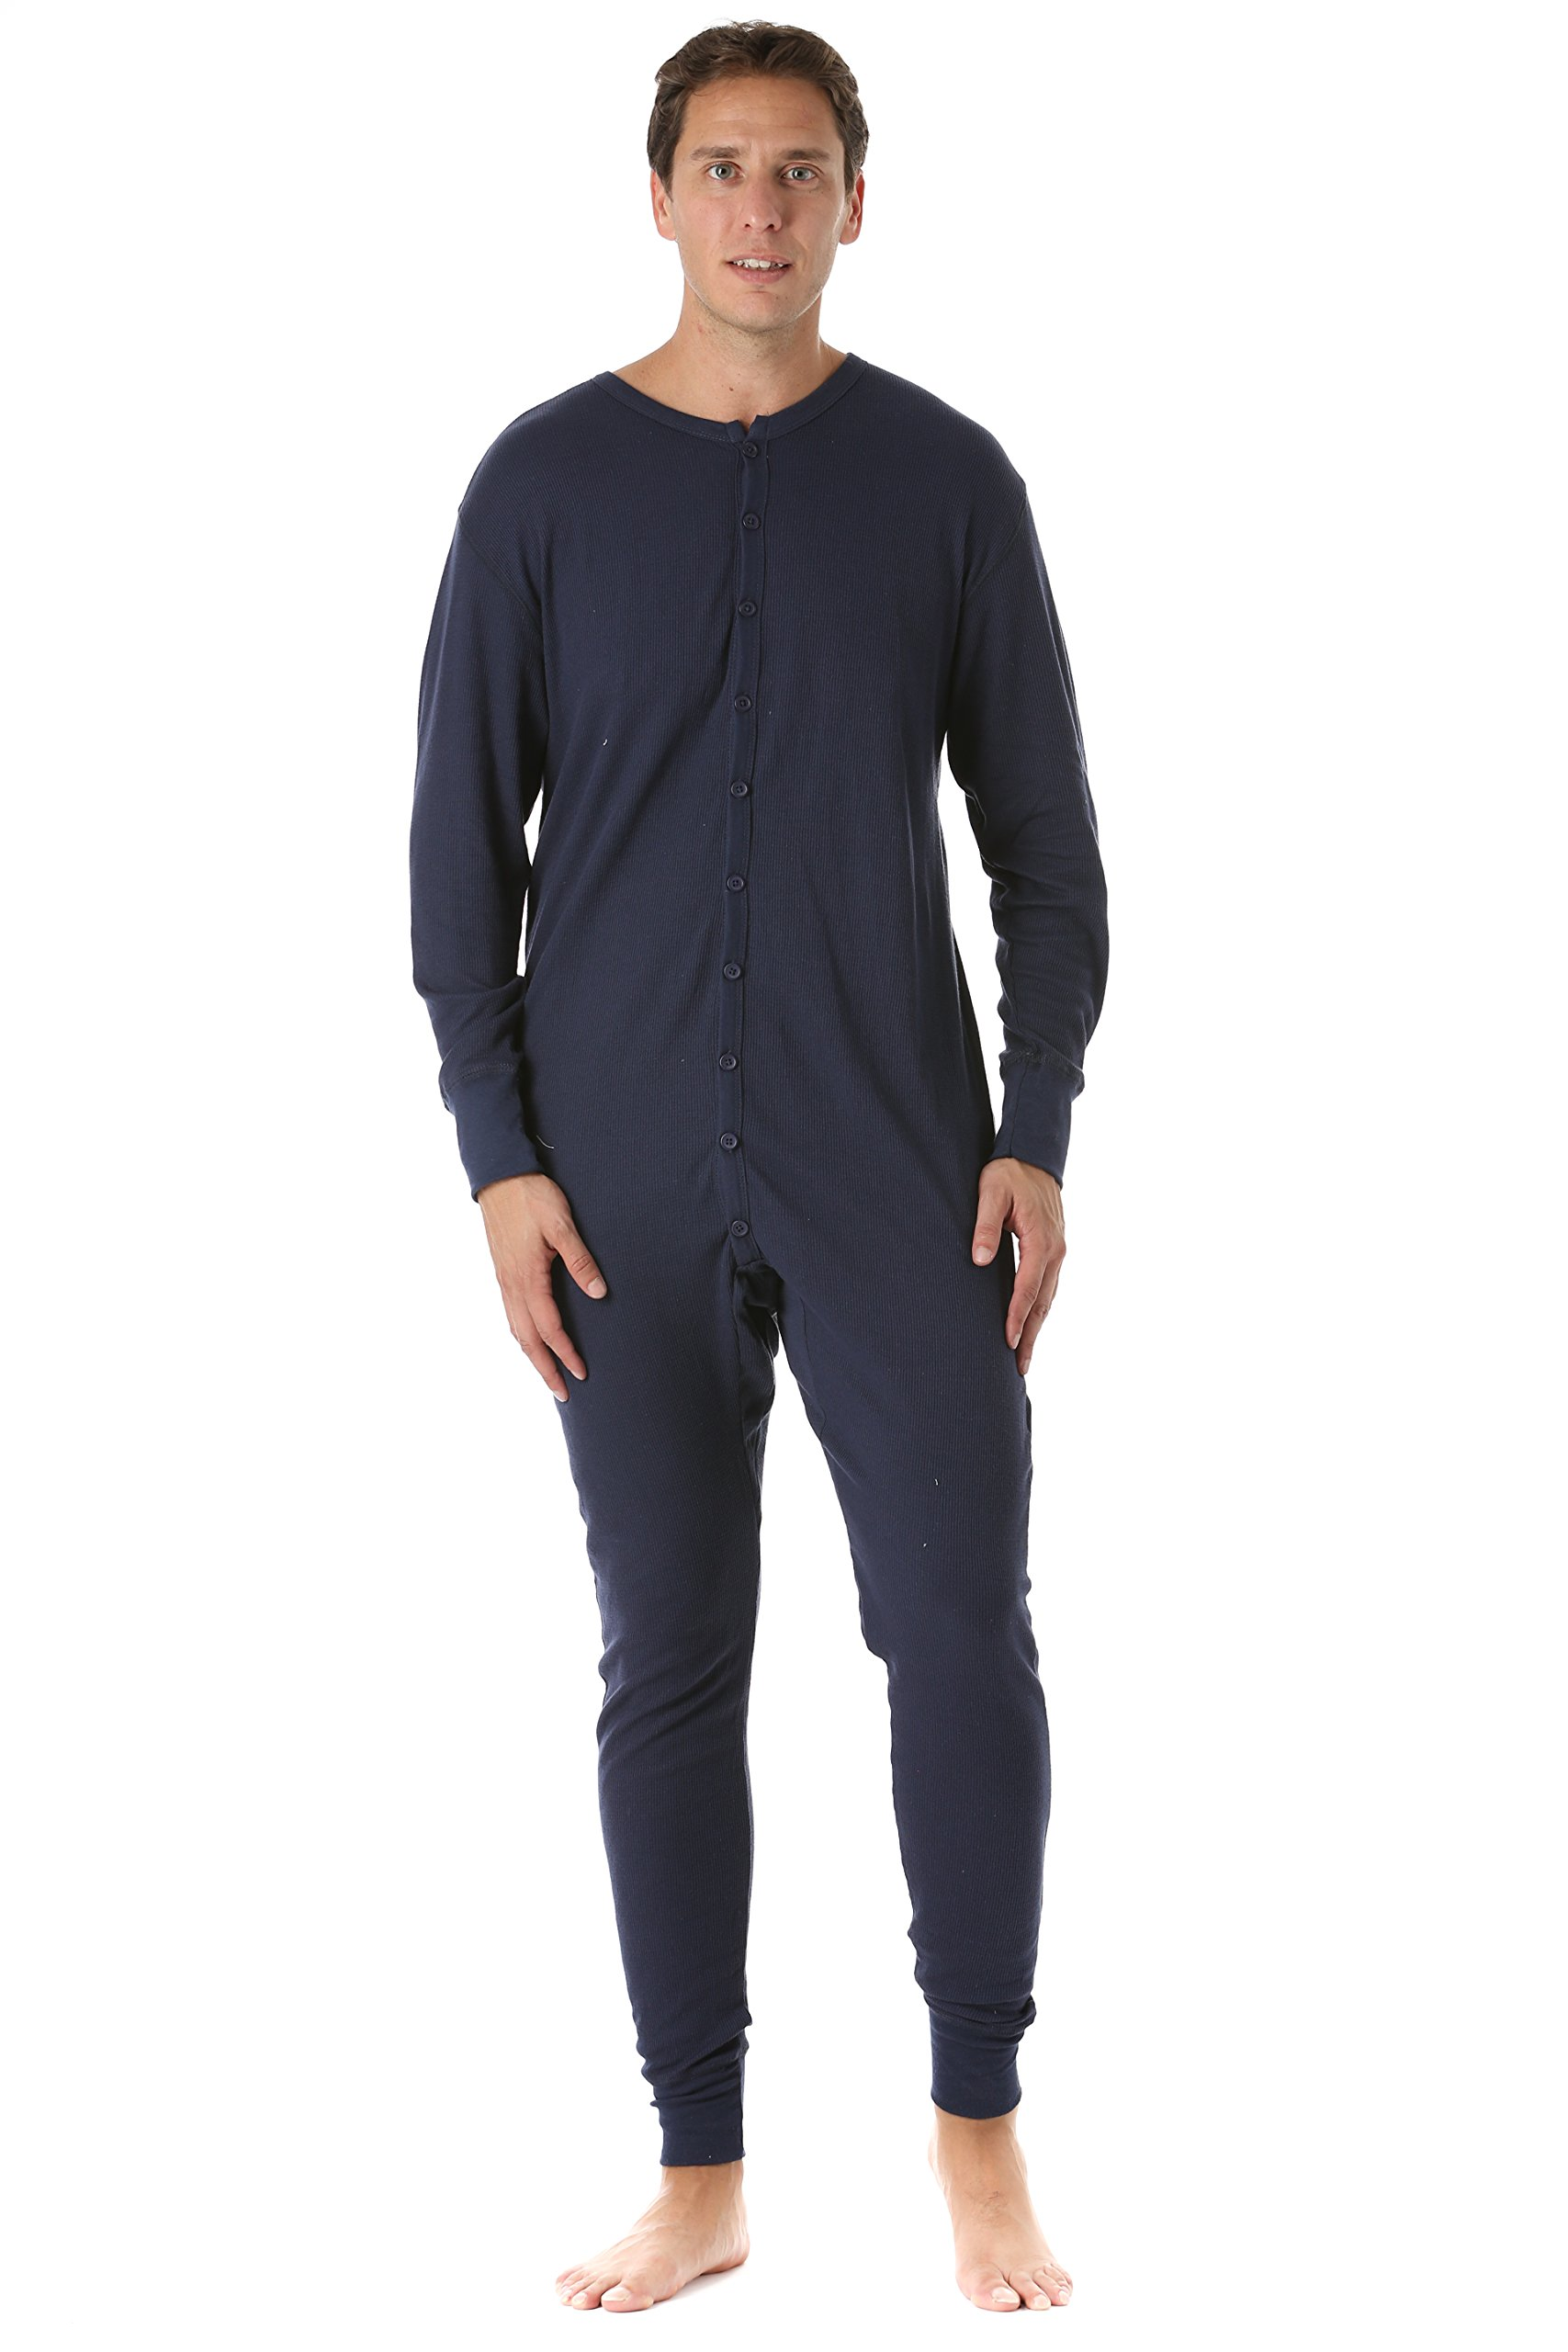 #followme 9393-NVY-L Men's Solid Thermal Henley Onesie